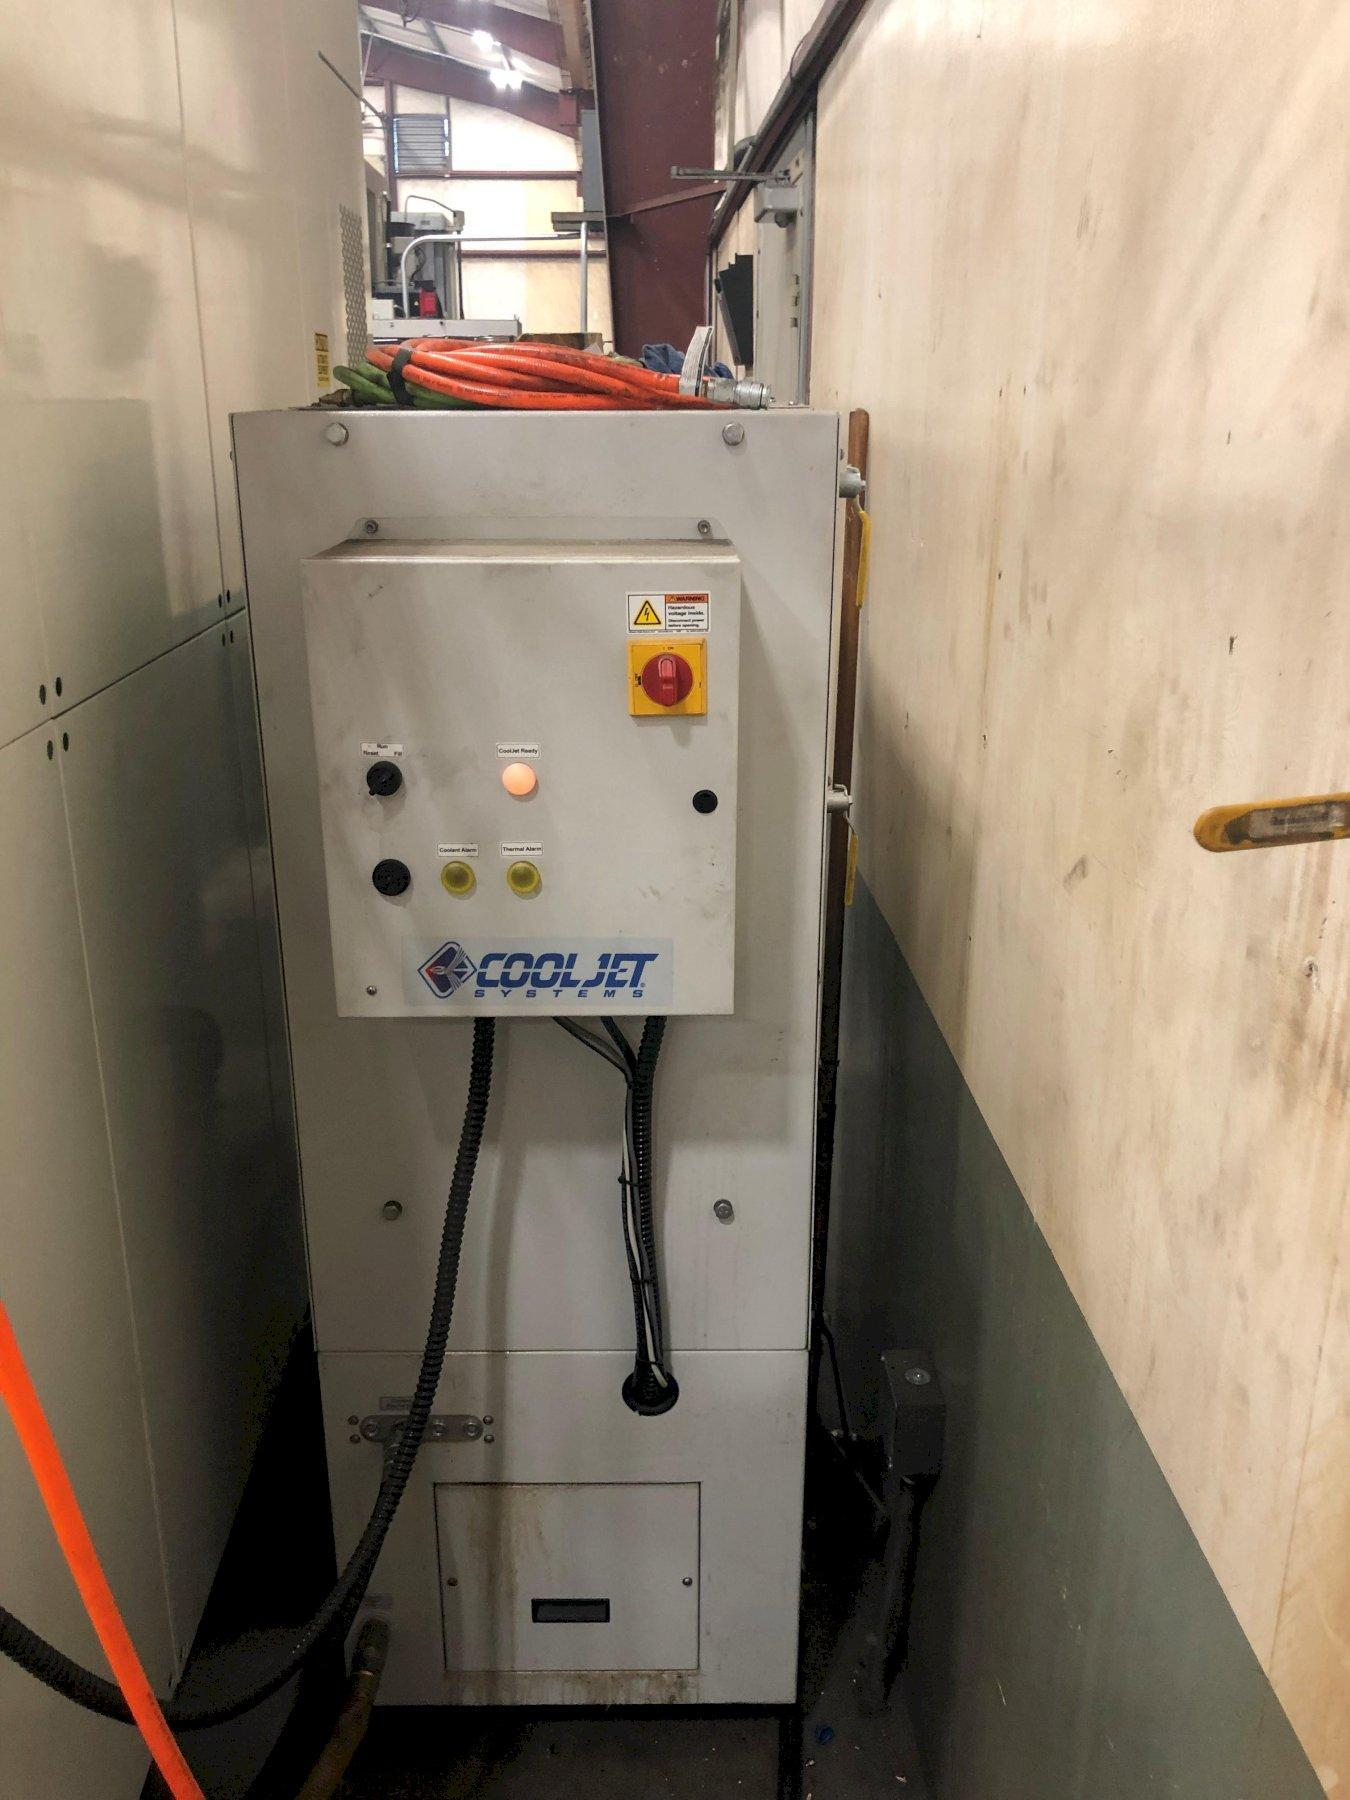 Kitamura Bridgecenter 6G Double Column Machining Center with: Heavy Duty Box Way, 50-Taper, 12k RPM Spindle Gear Drive, 40-ATC, Jet Systems 1000 PSI Coolant Pump, Remote Jog Handle, Chip Conveyor, and Coolant Tank.